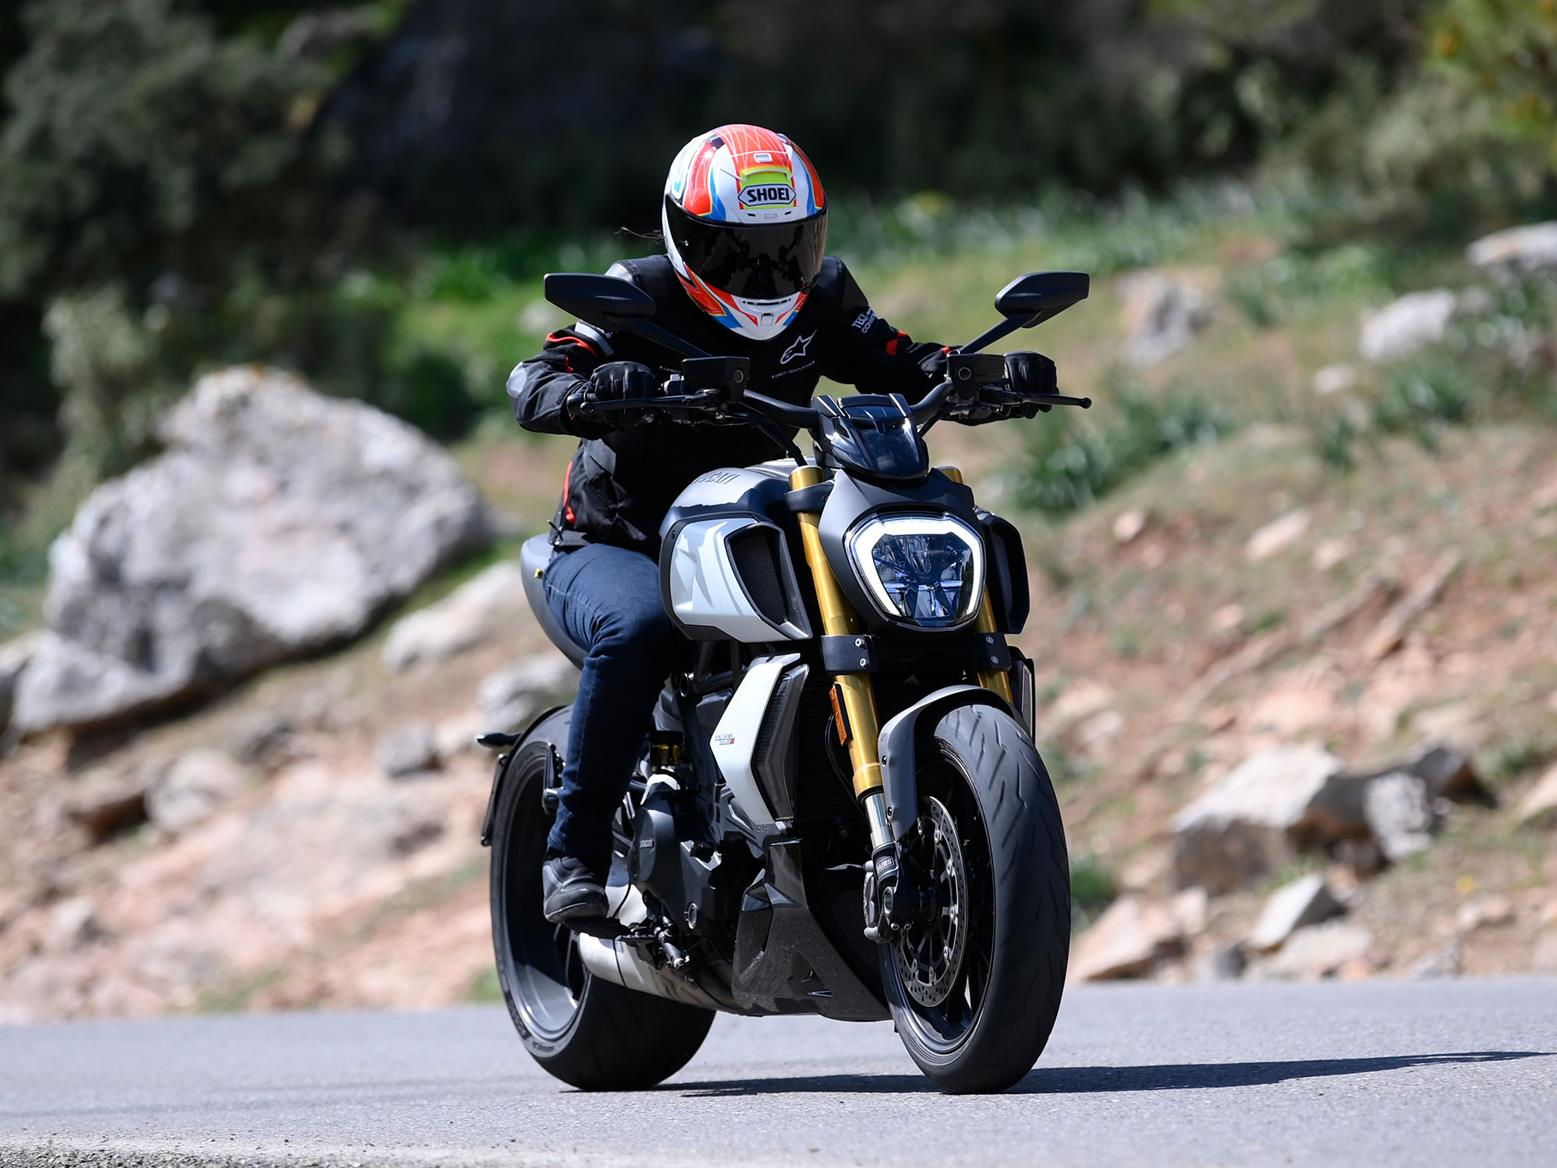 DUCATI DIAVEL 1260 S (2019-on) Review